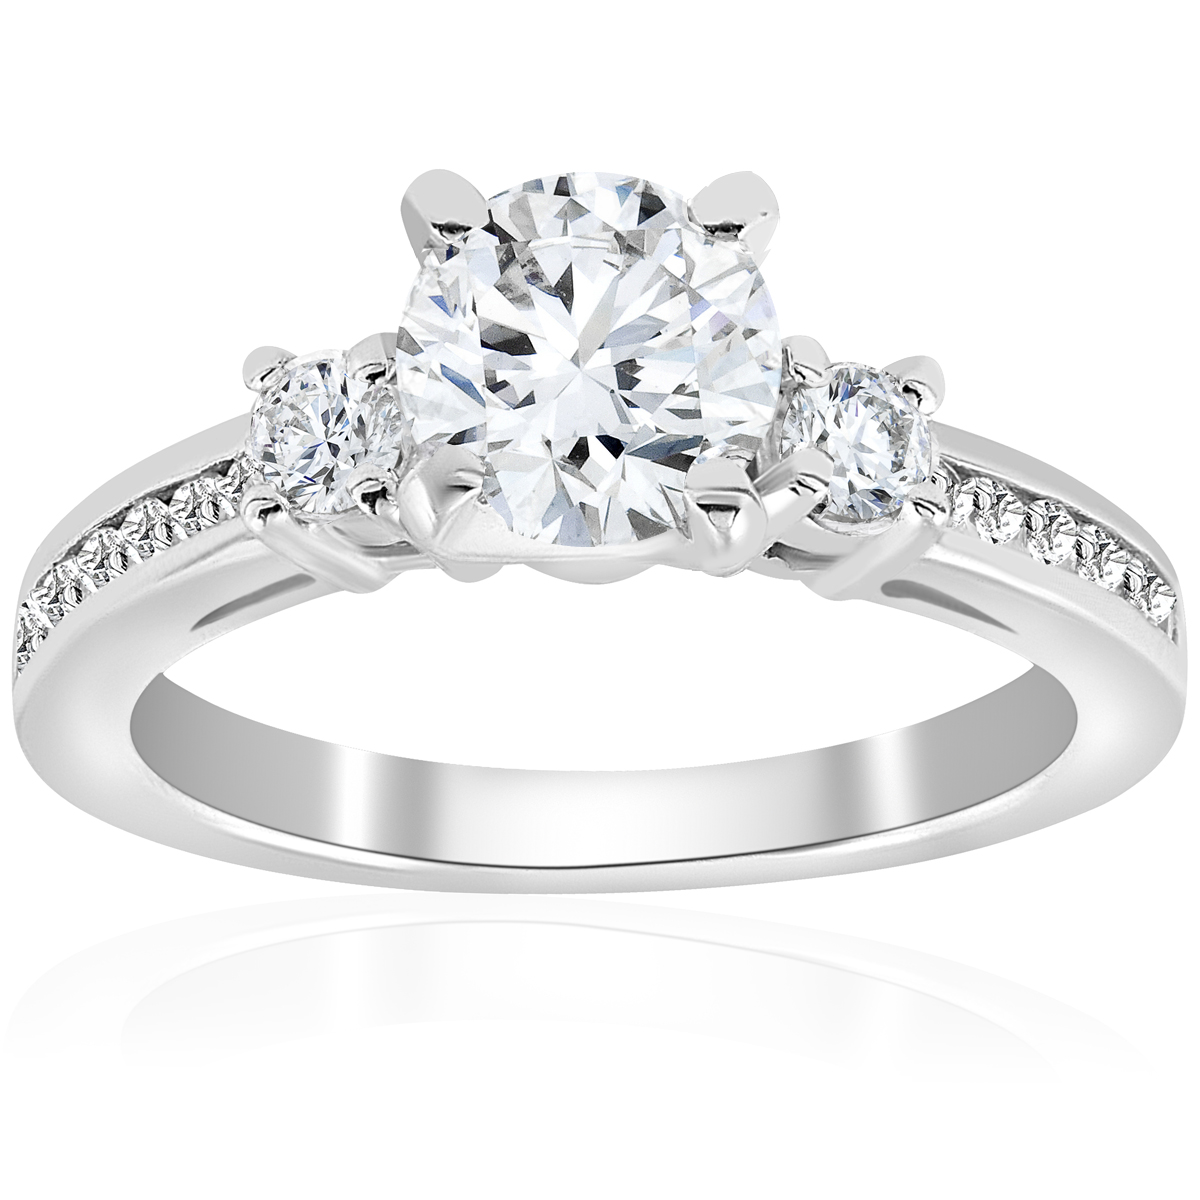 1 ct diamond round cut solitaire 3 stone engagement ring for 1 ct wedding ring